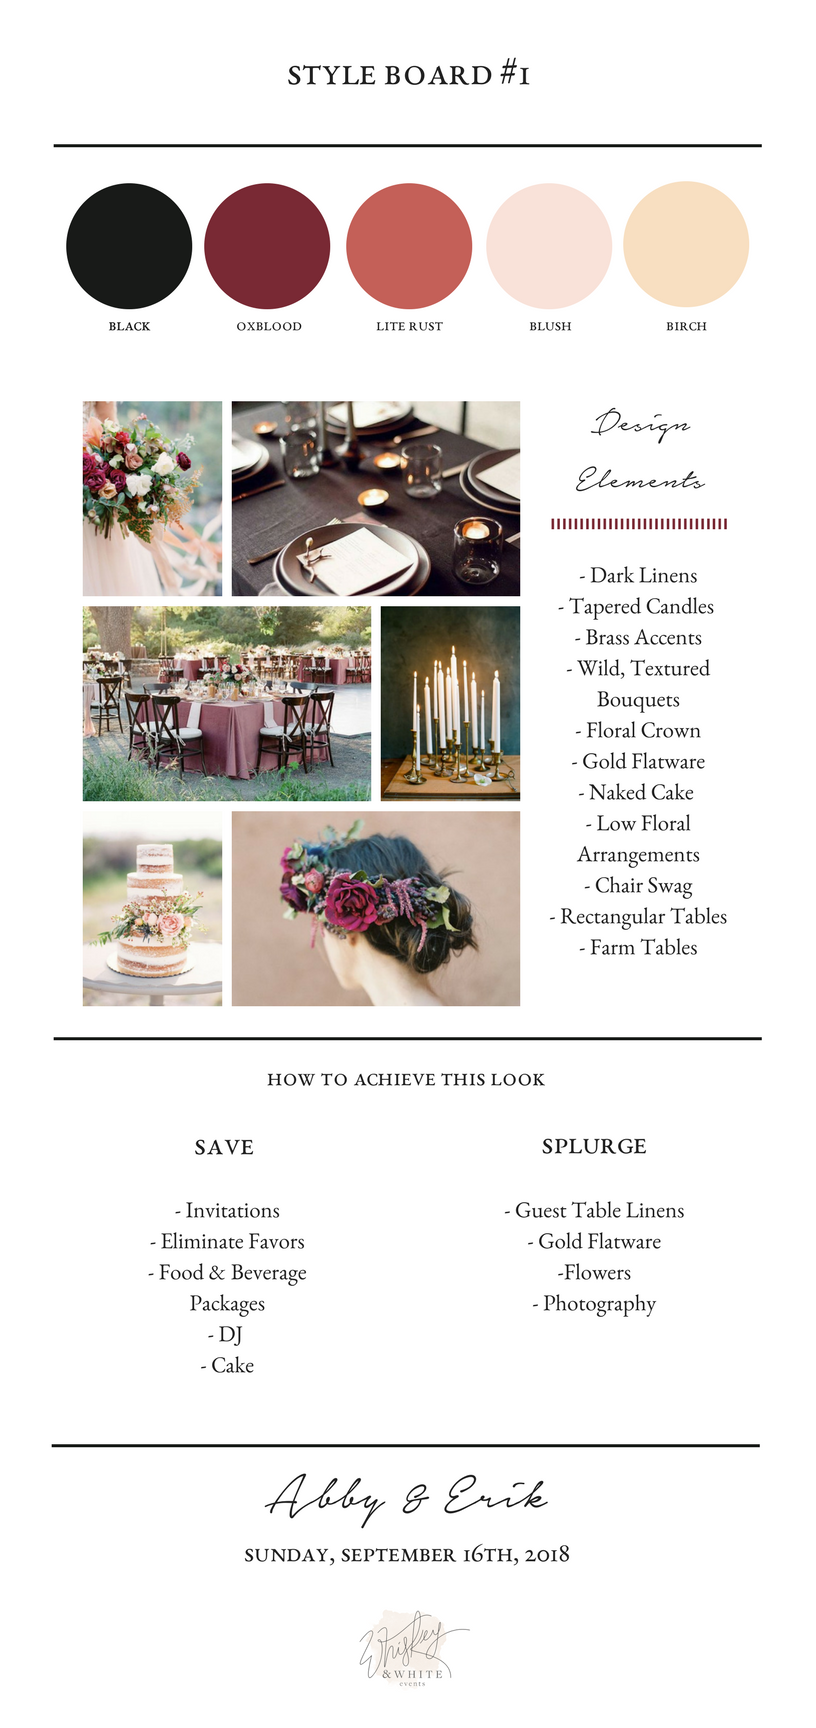 Abby & Erik's Wedding StyleBoard #1 (1).png